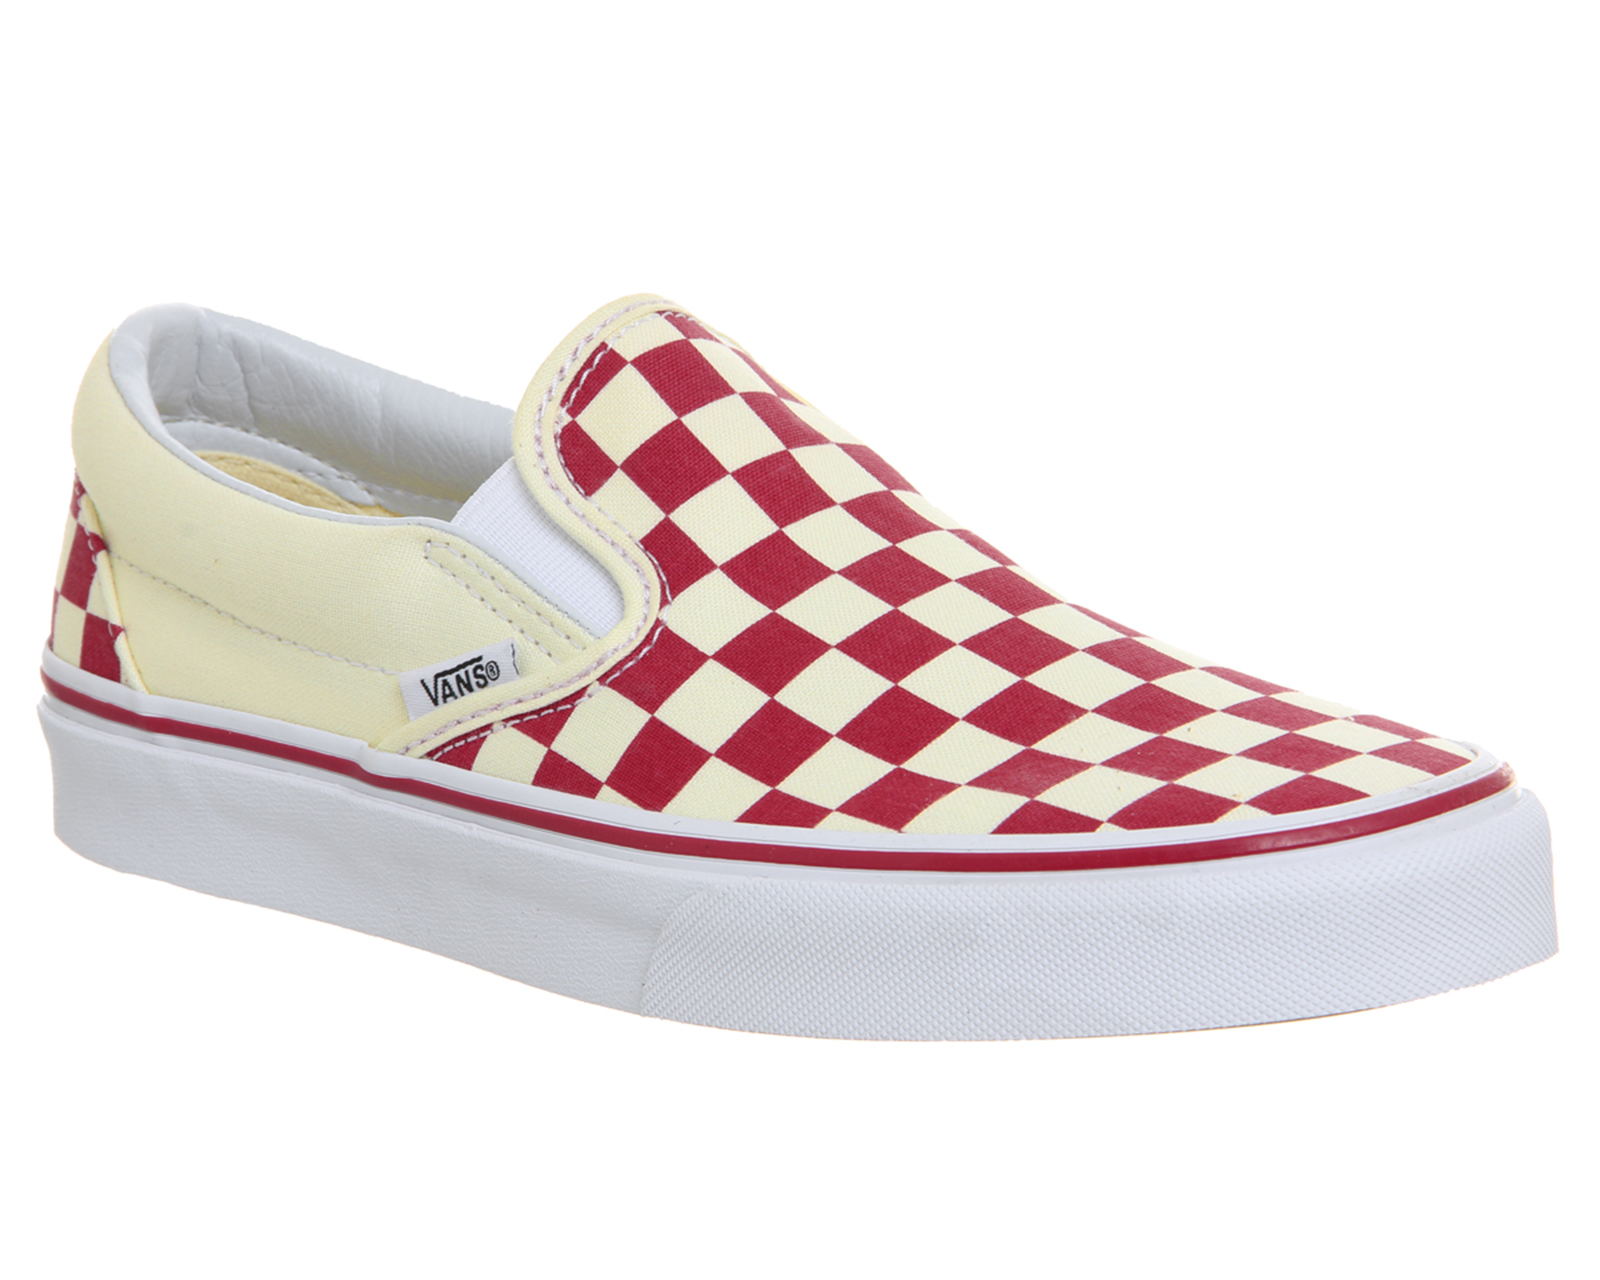 92239fe3e483 Sentinel Mens Vans Classic Slip On Trainers RACING RED CLASSIC WHITE  CHECKERBOARD Trainer